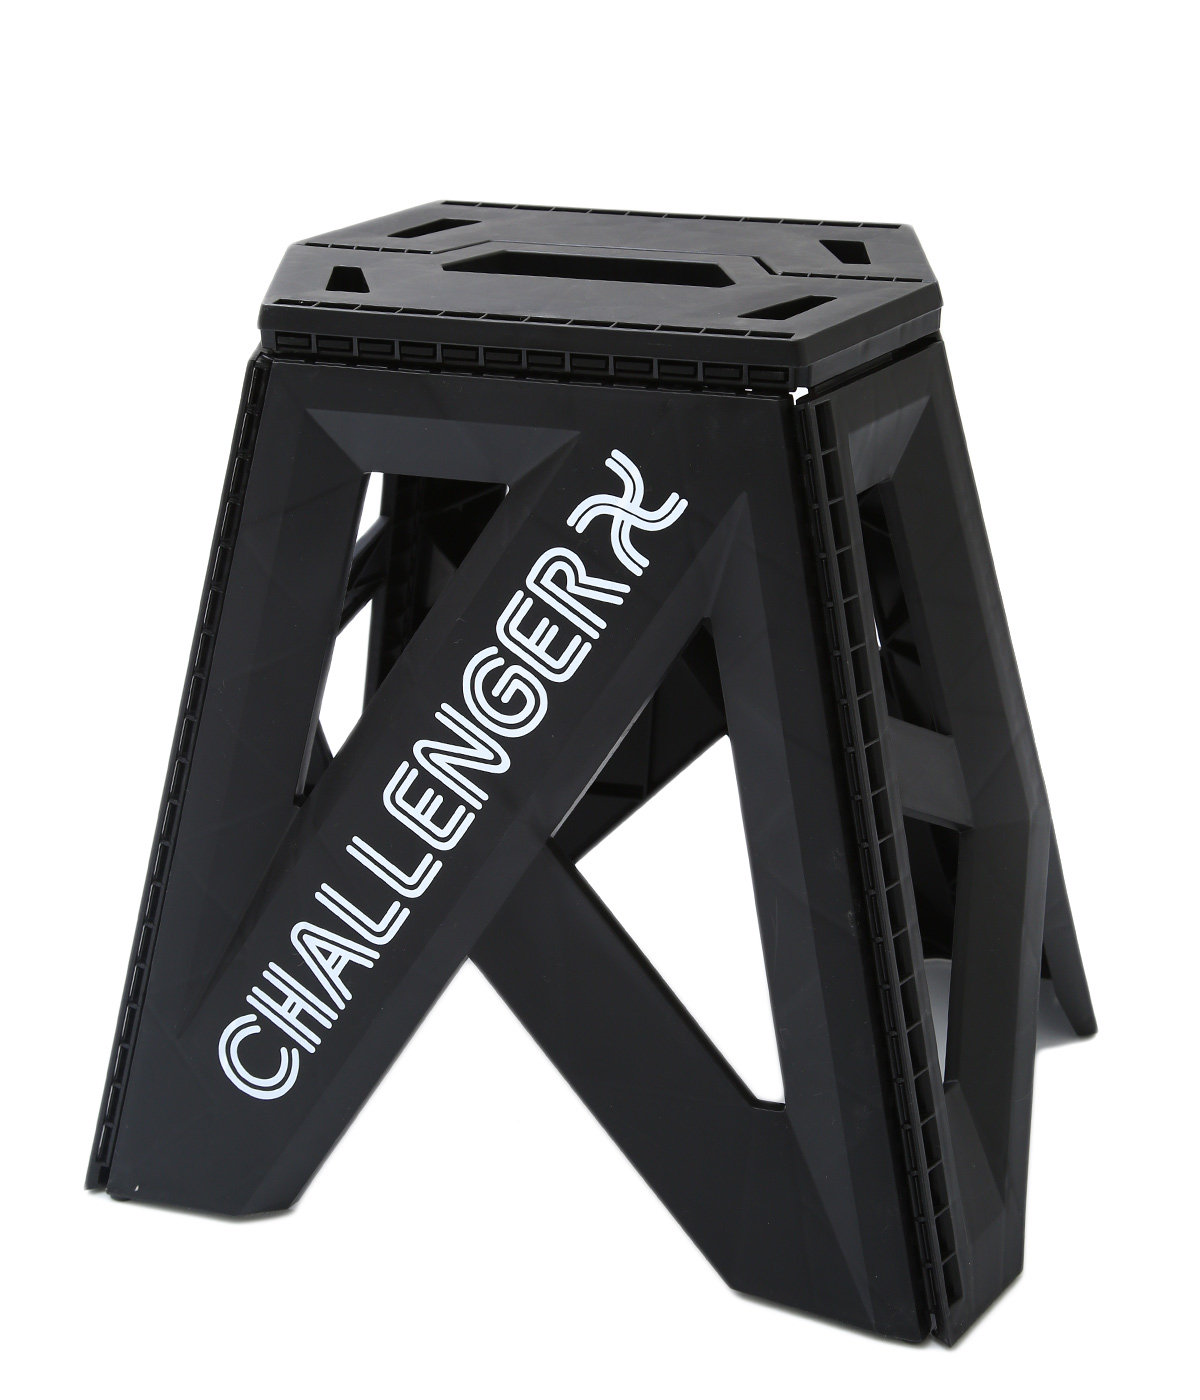 OUTDOOR HIGH CHAIR